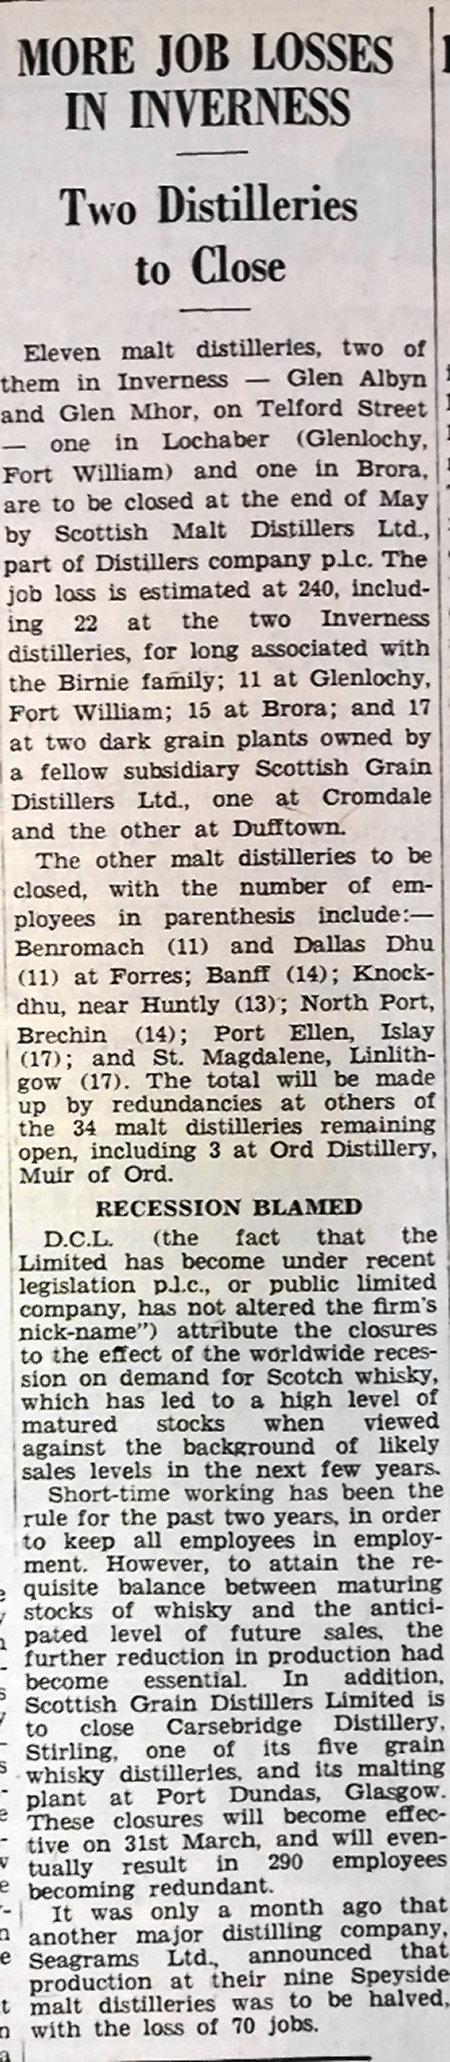 Newspaper clipping about the distillery closures